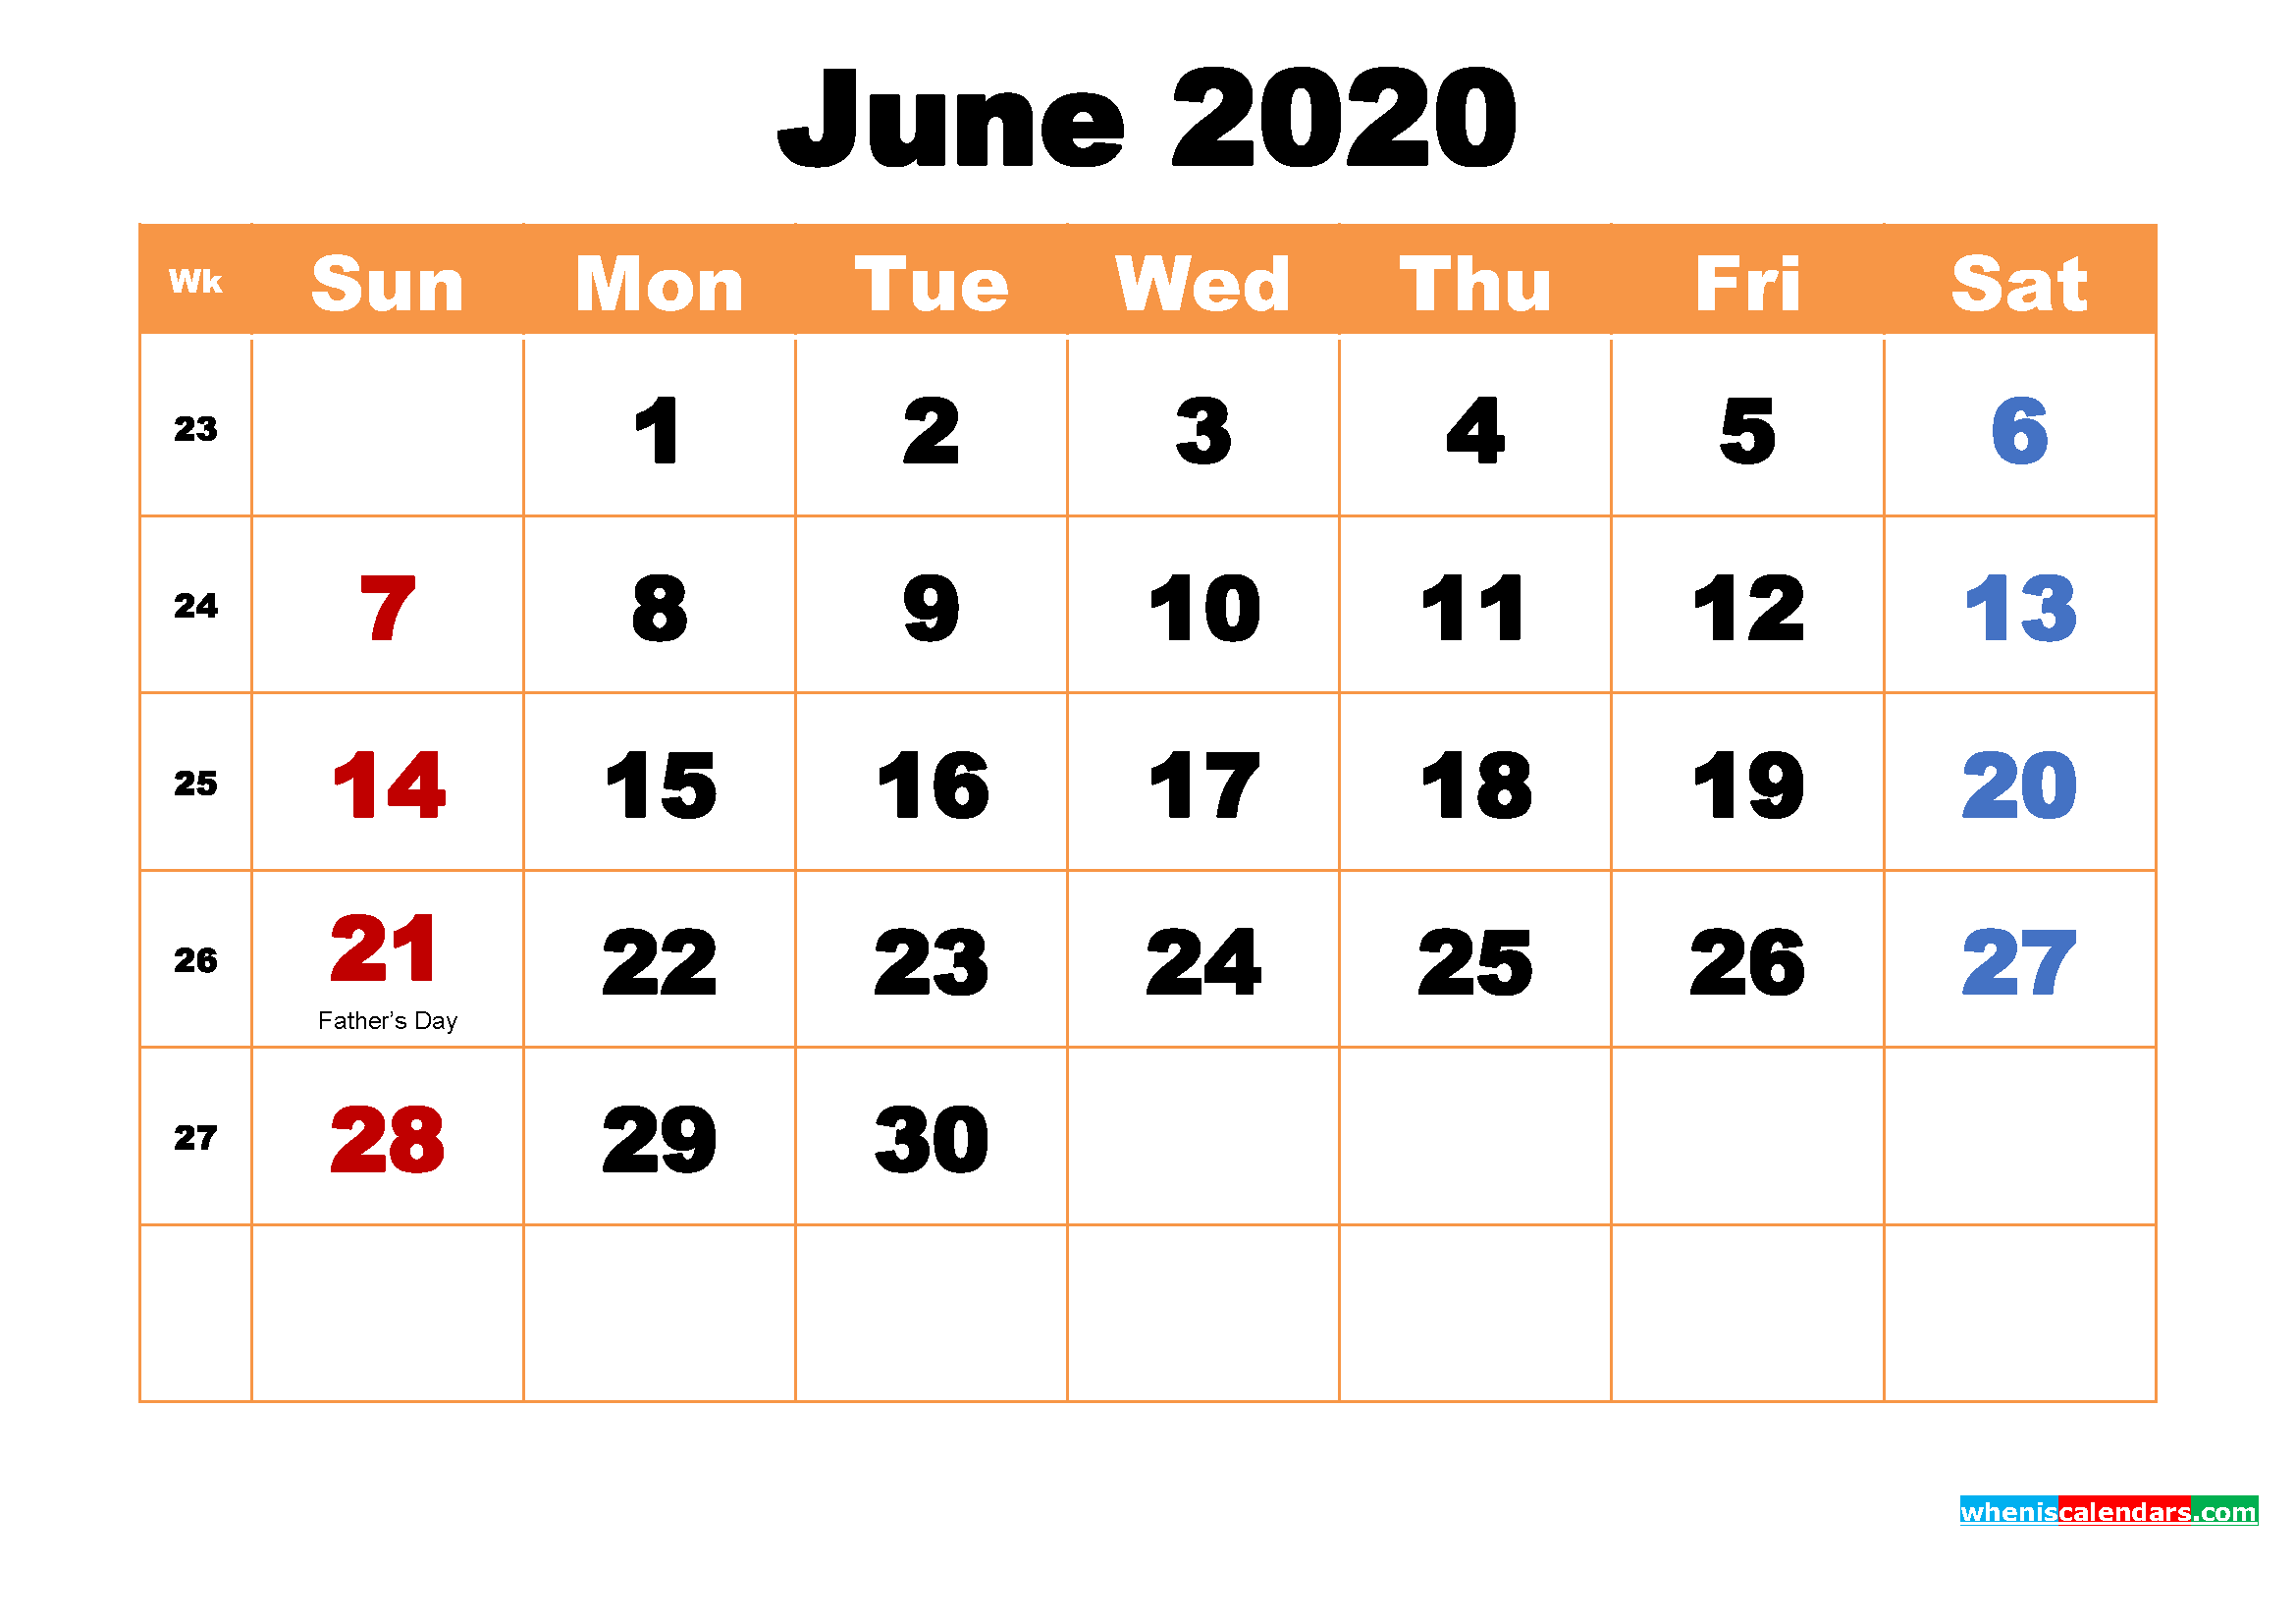 June 2020 Desktop Calendar Free Download